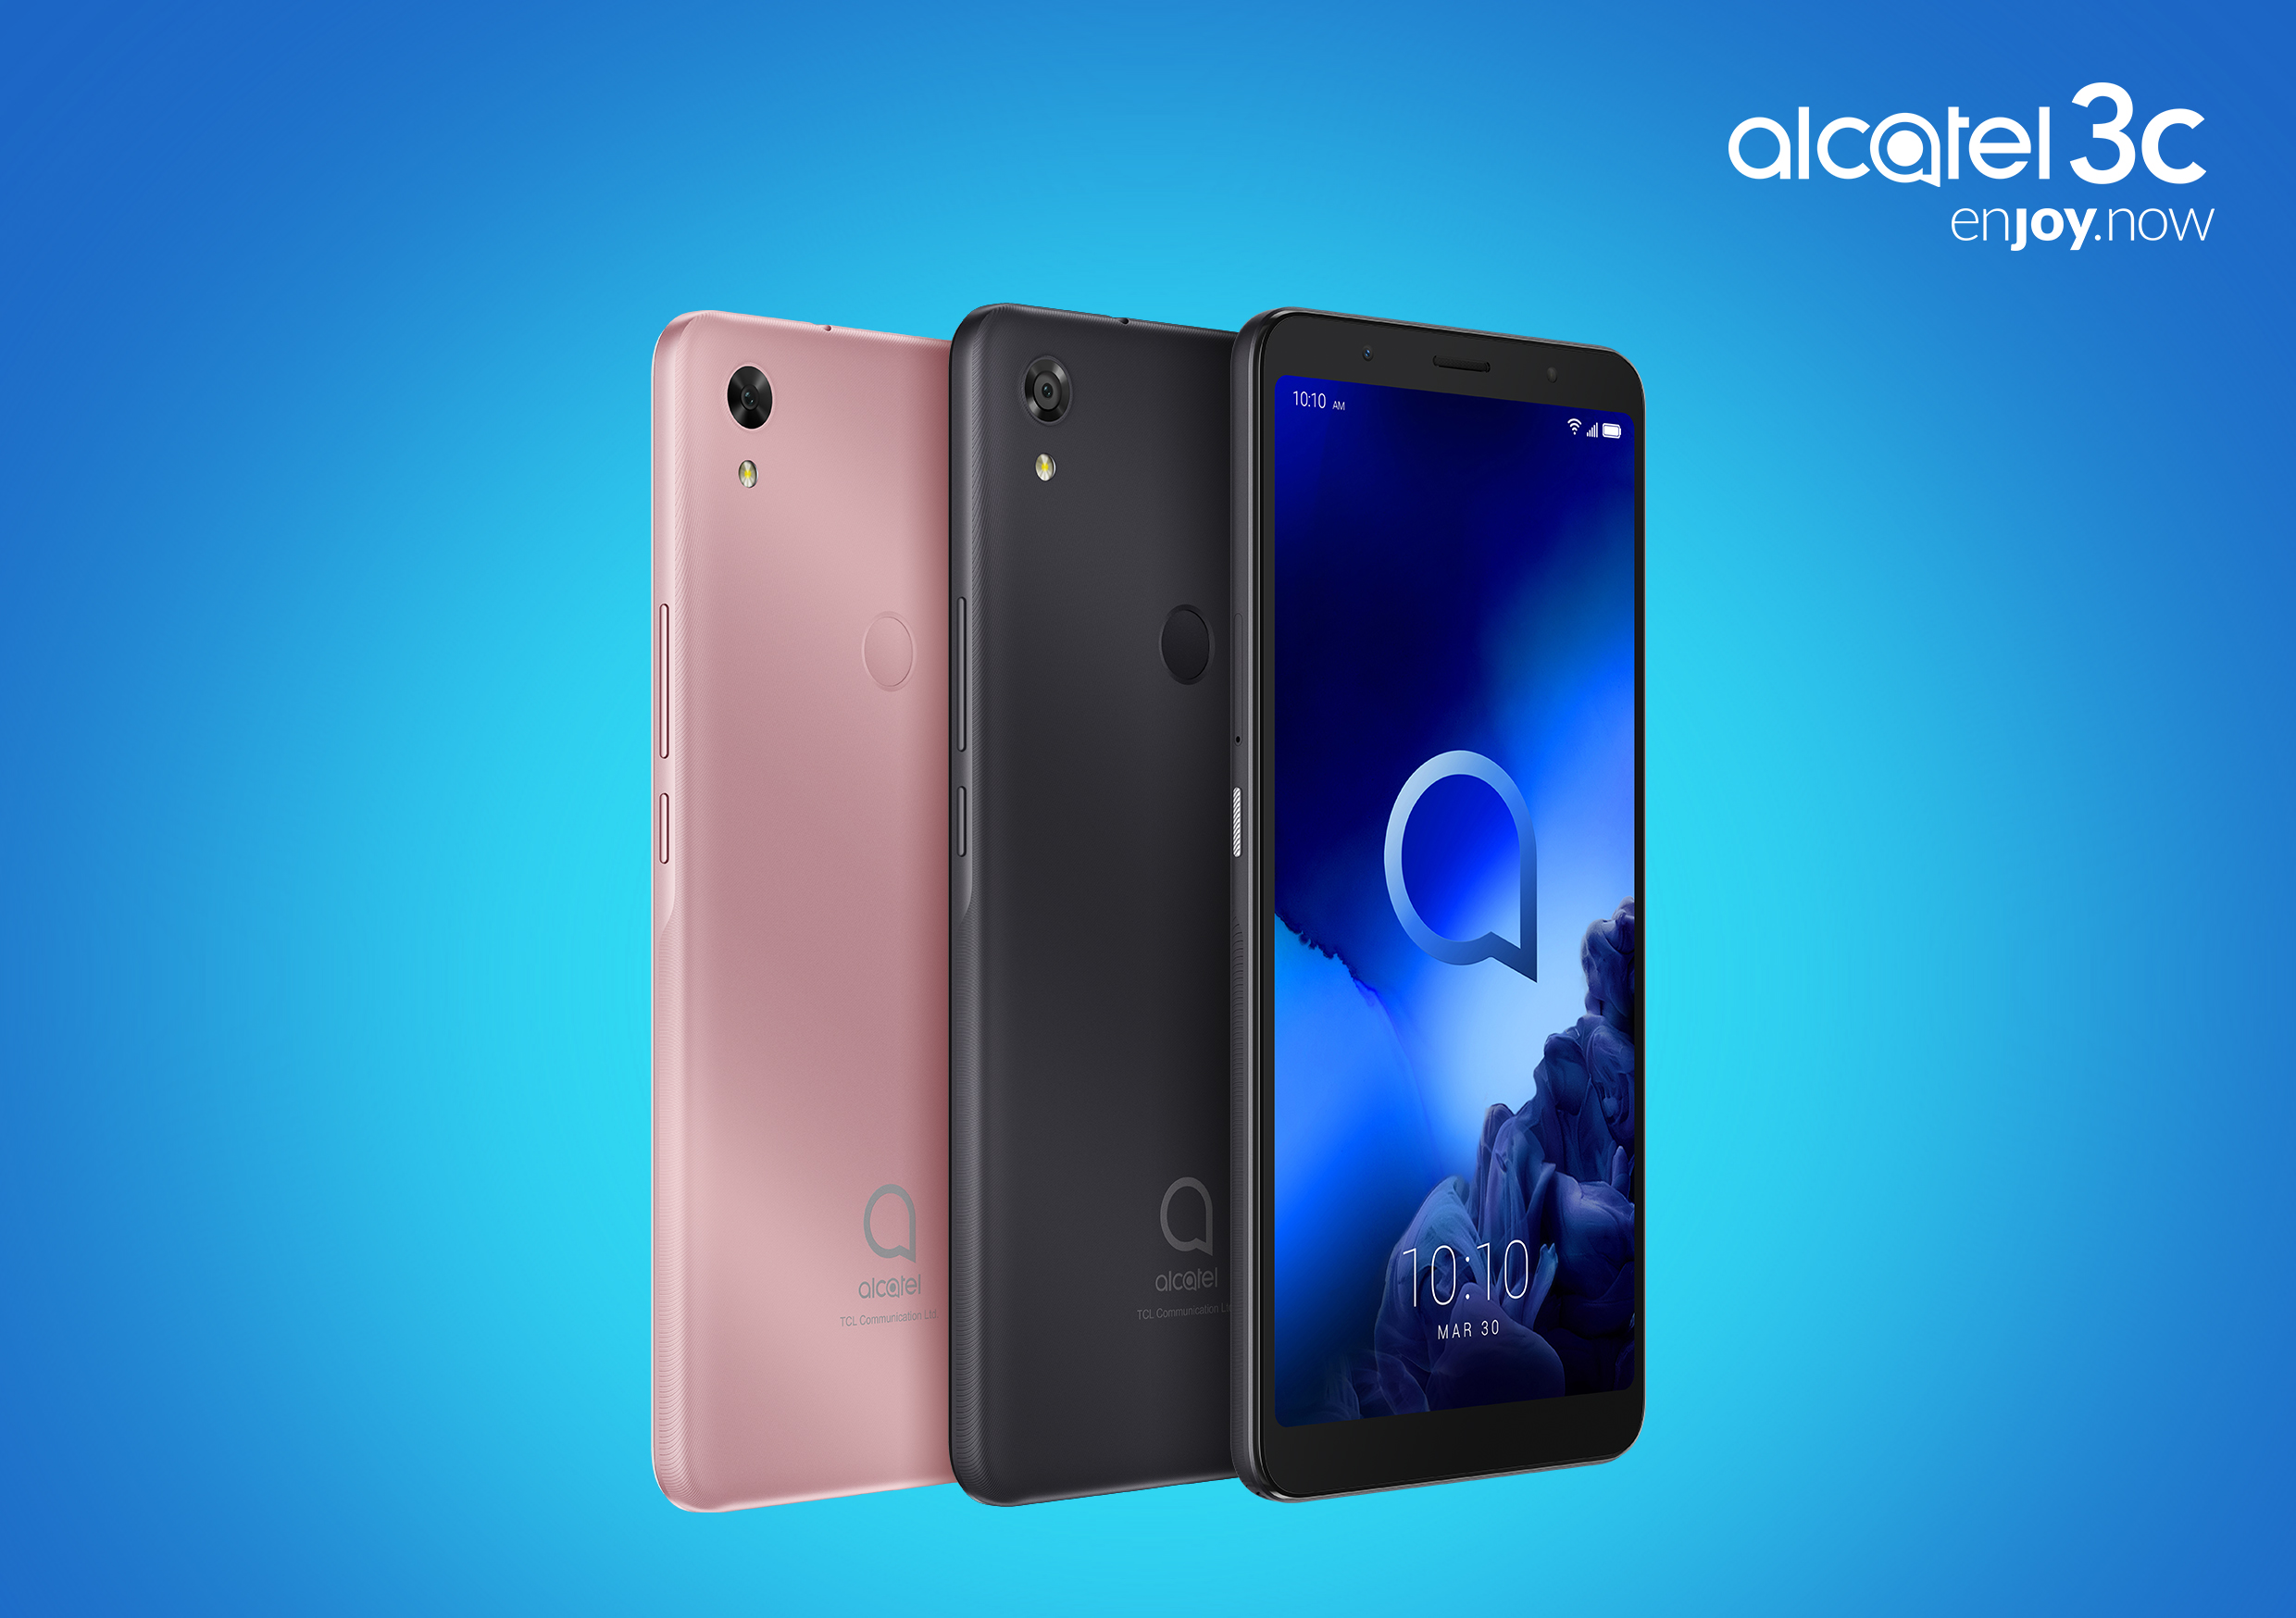 TCL Communication introduces the Alcatel 3C with the dedicated Google Assistant Button and cinematic viewing experience